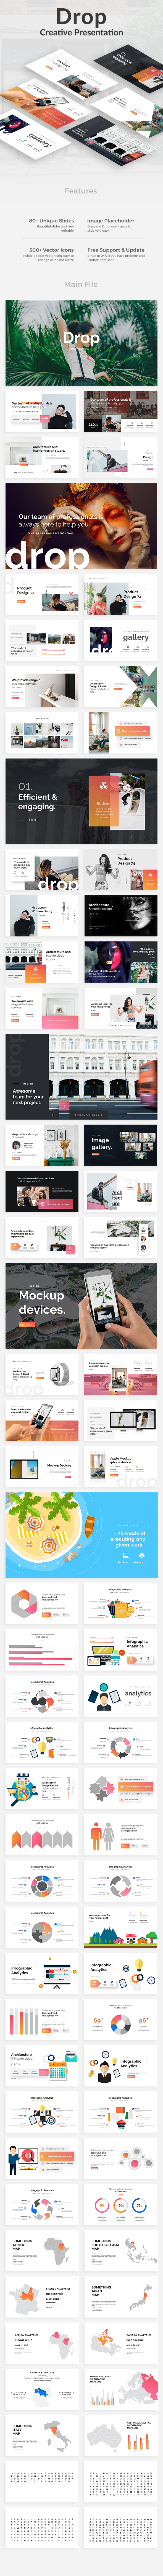 Drop Creative Powerpoint Template - Creative PowerPoint Templates